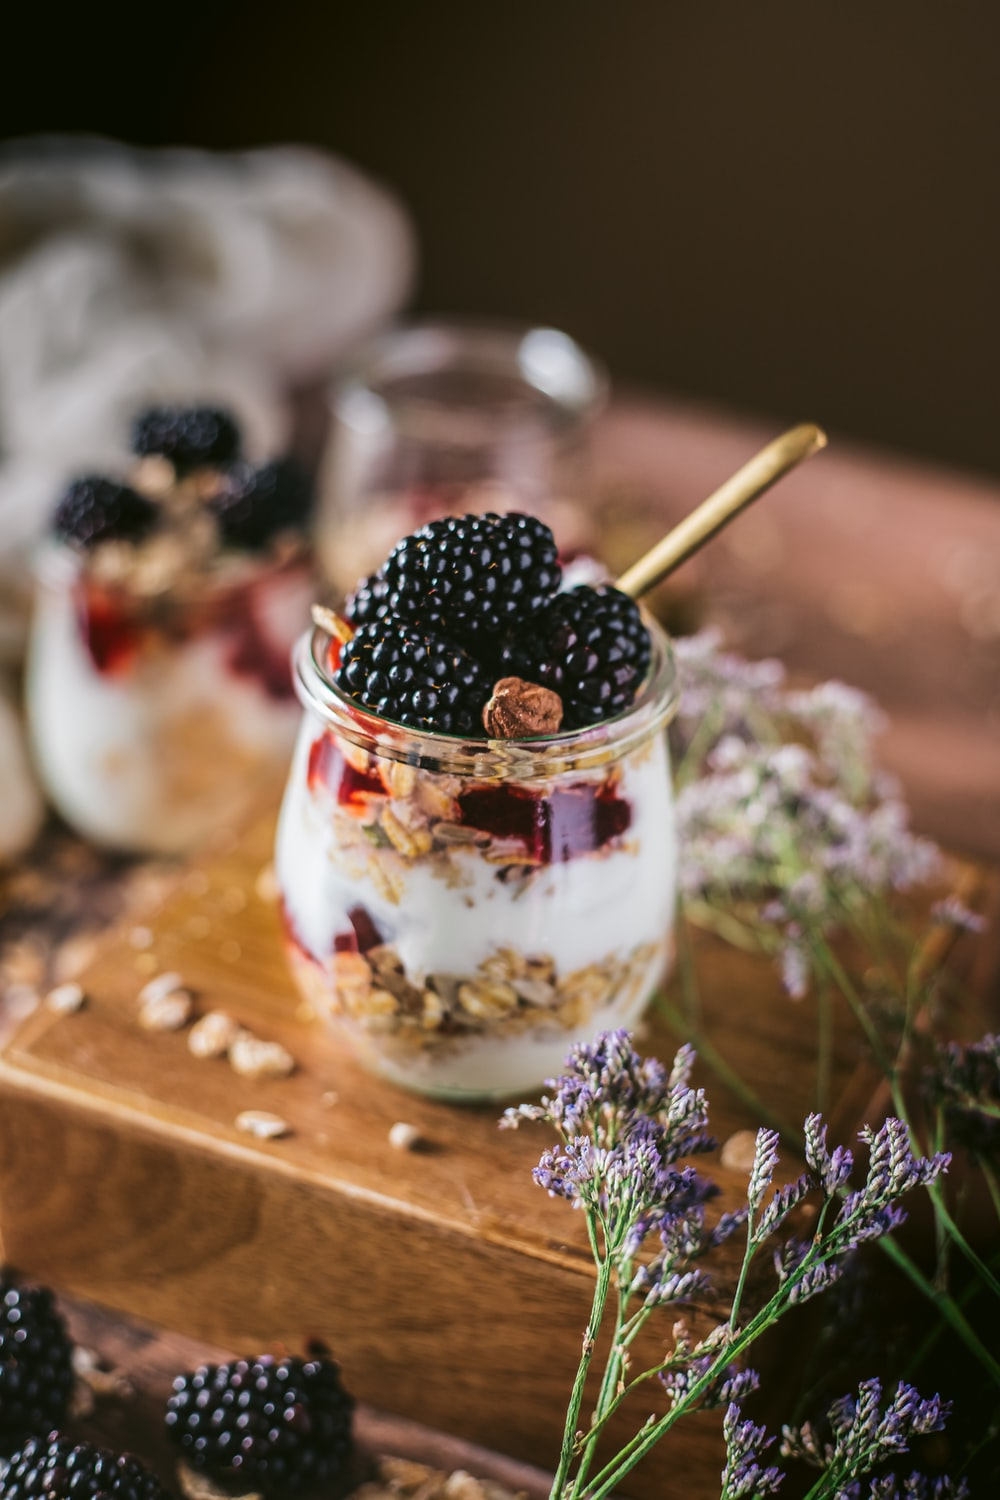 clear glass cup with black and red berries